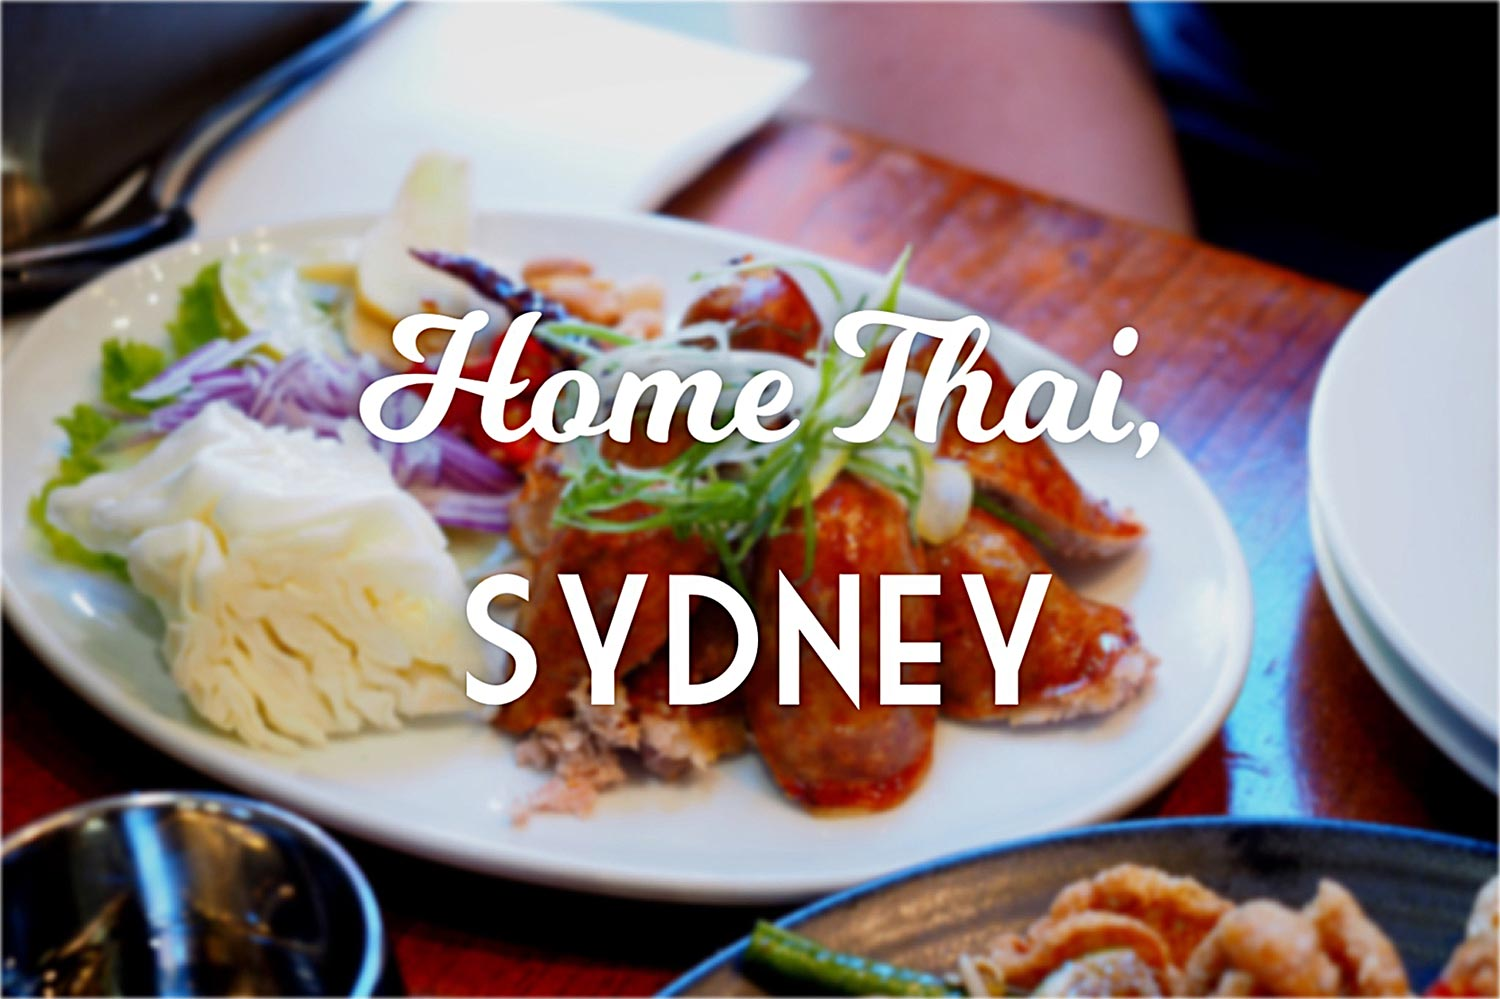 Home Thai, Sydney. Sydney Food Blog Review